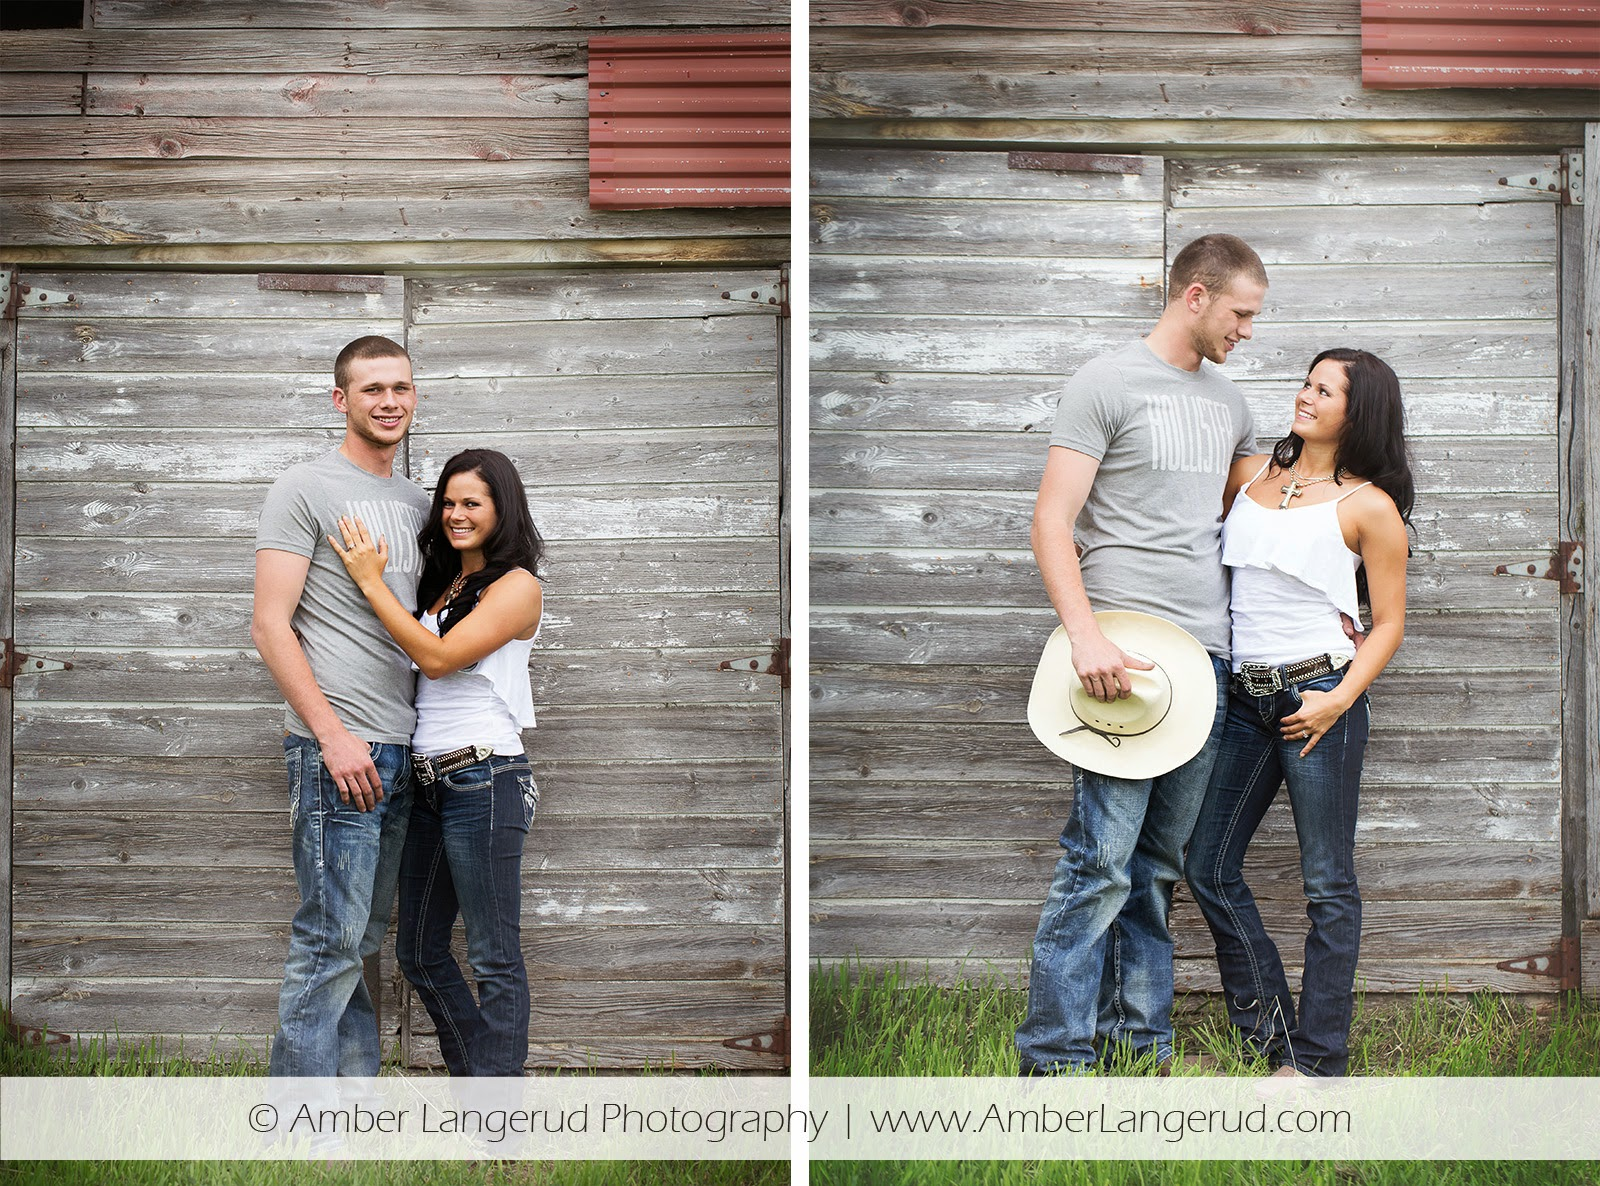 Outdoor Country Engagement Pictures | Detroit Lakes Area Photographer | Engagement Photos with Old Barn